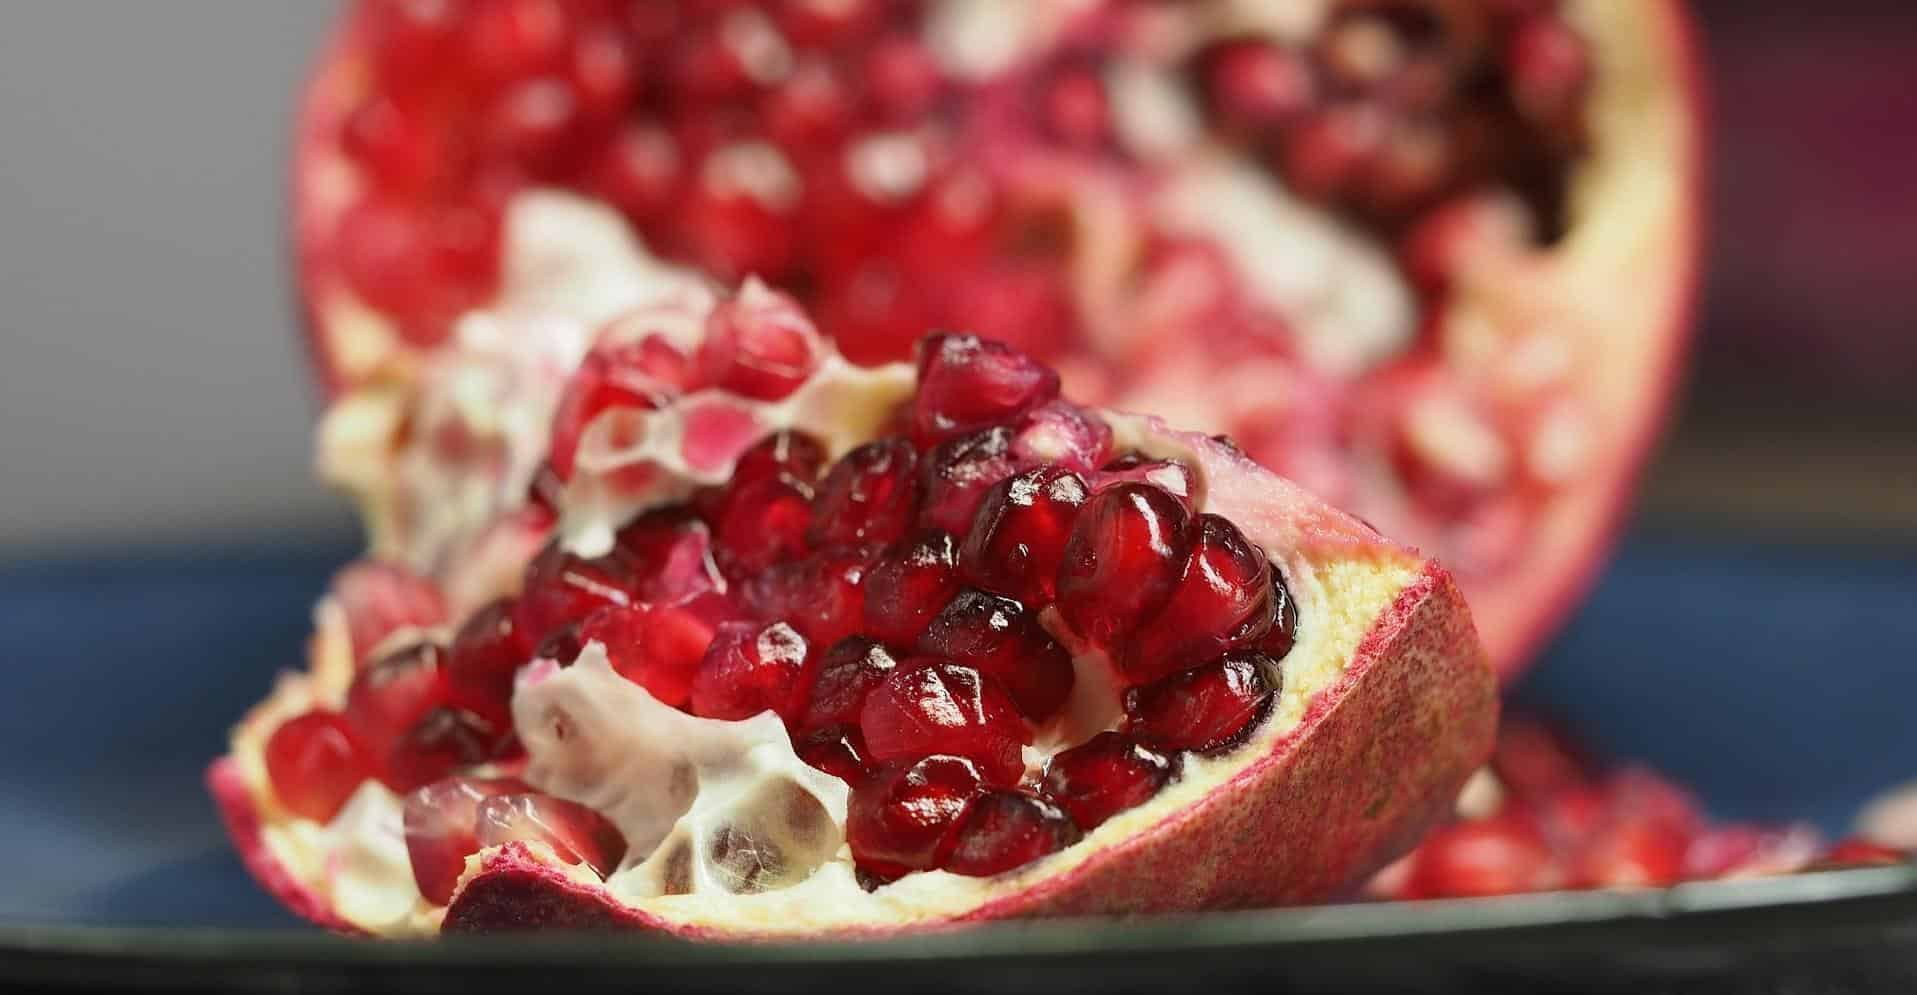 Opened pomegranate.